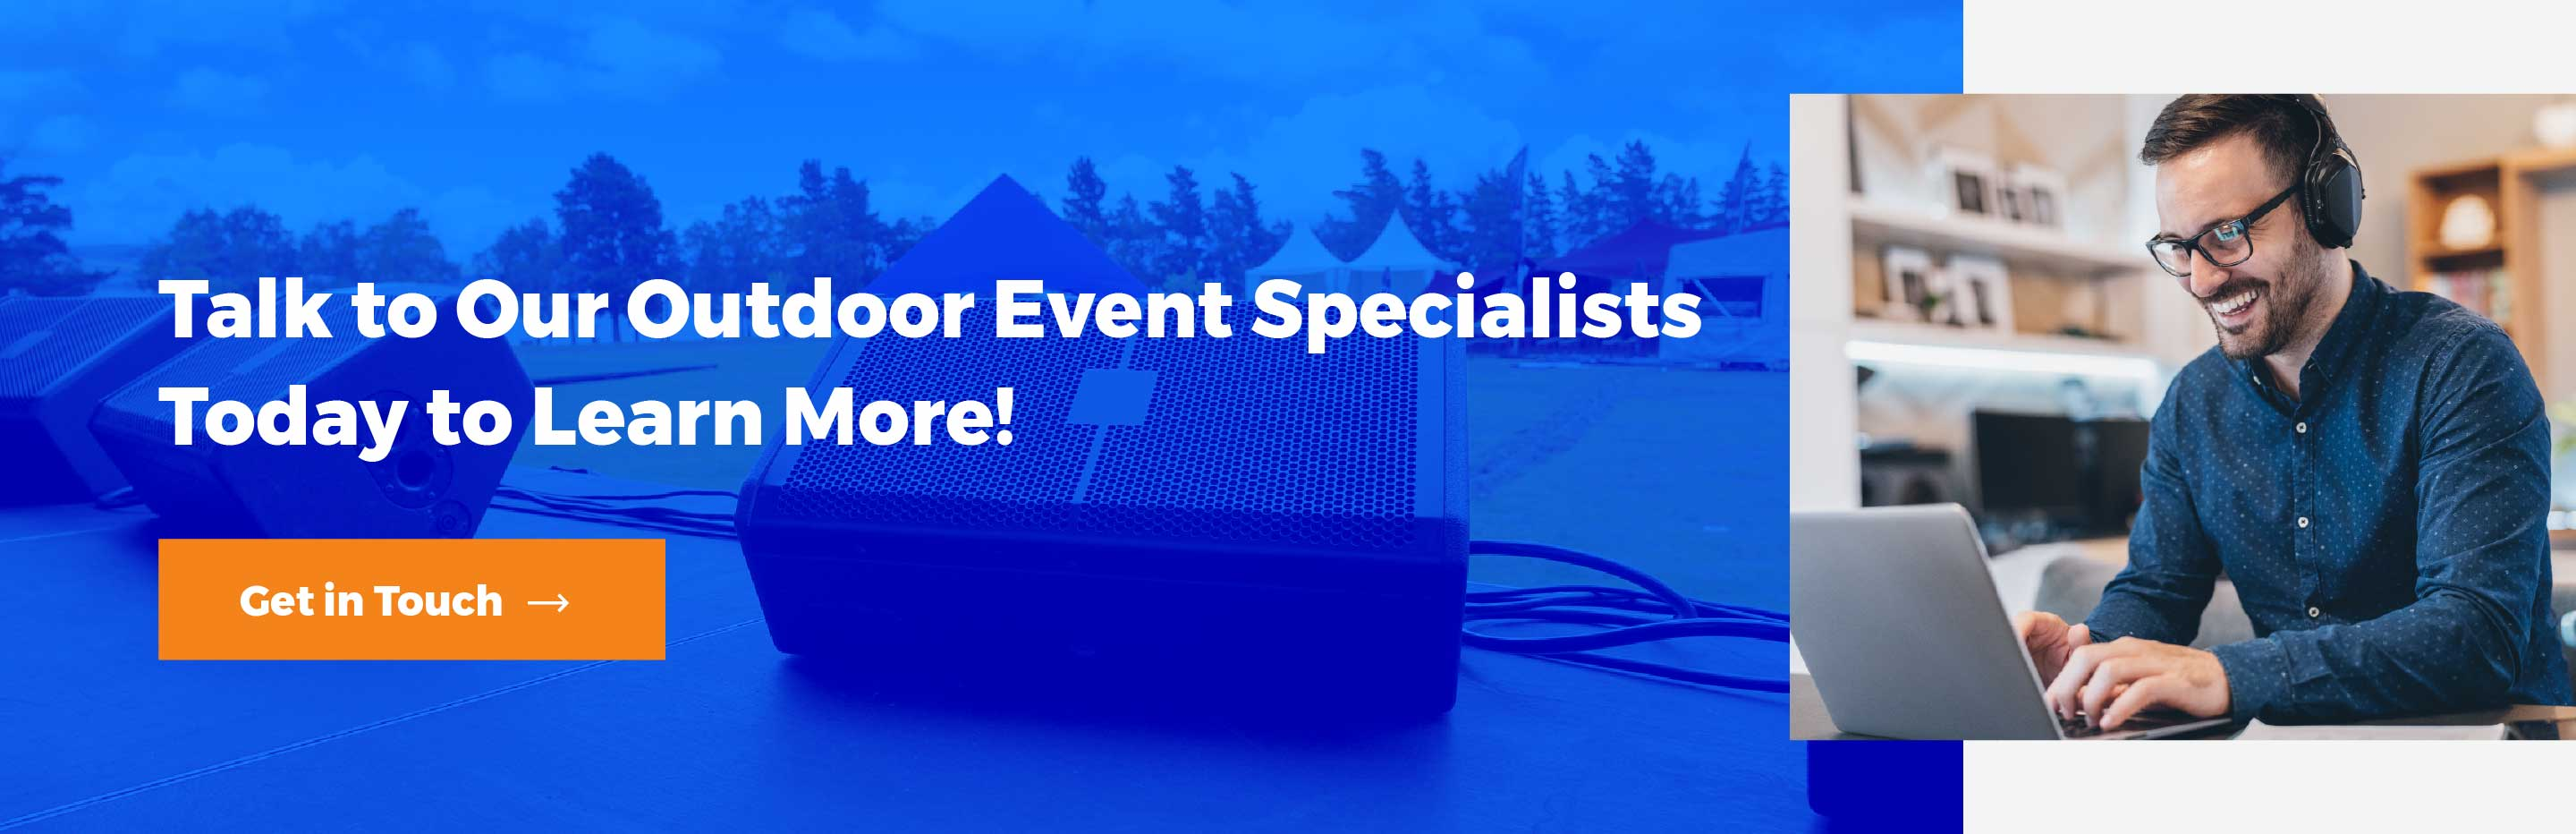 Talk to Our Outdoor Event Specialists Today to Learn More - Get in Touch